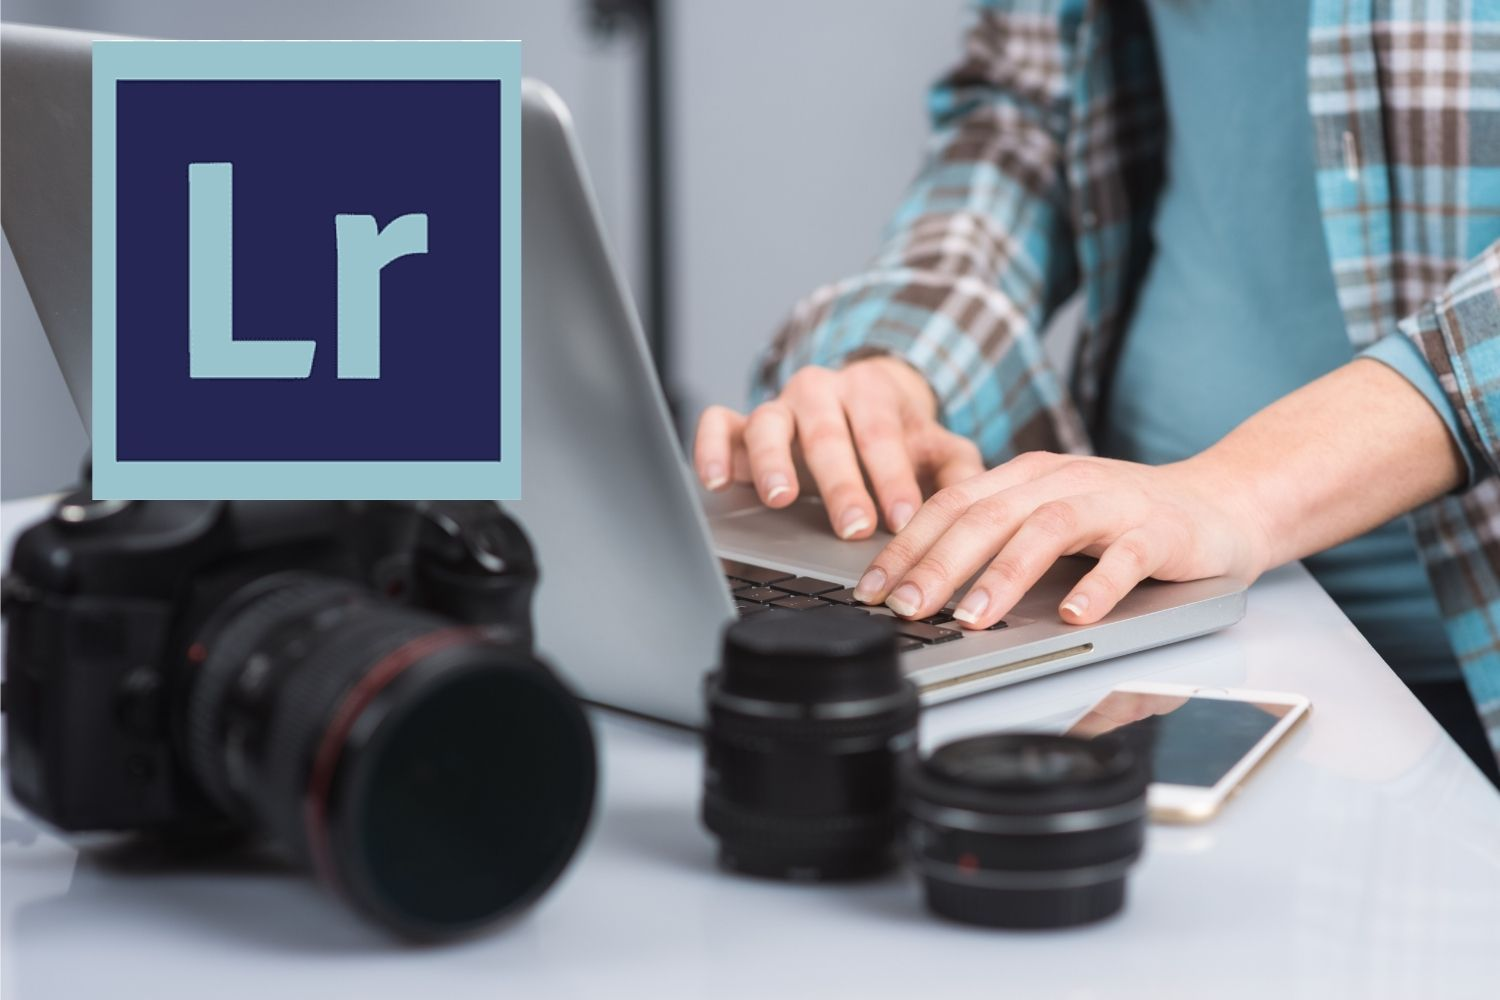 Learn how to use Adobe Lightroom Classic and Adobe Lightroom CC like a pro with this step-by-step course!